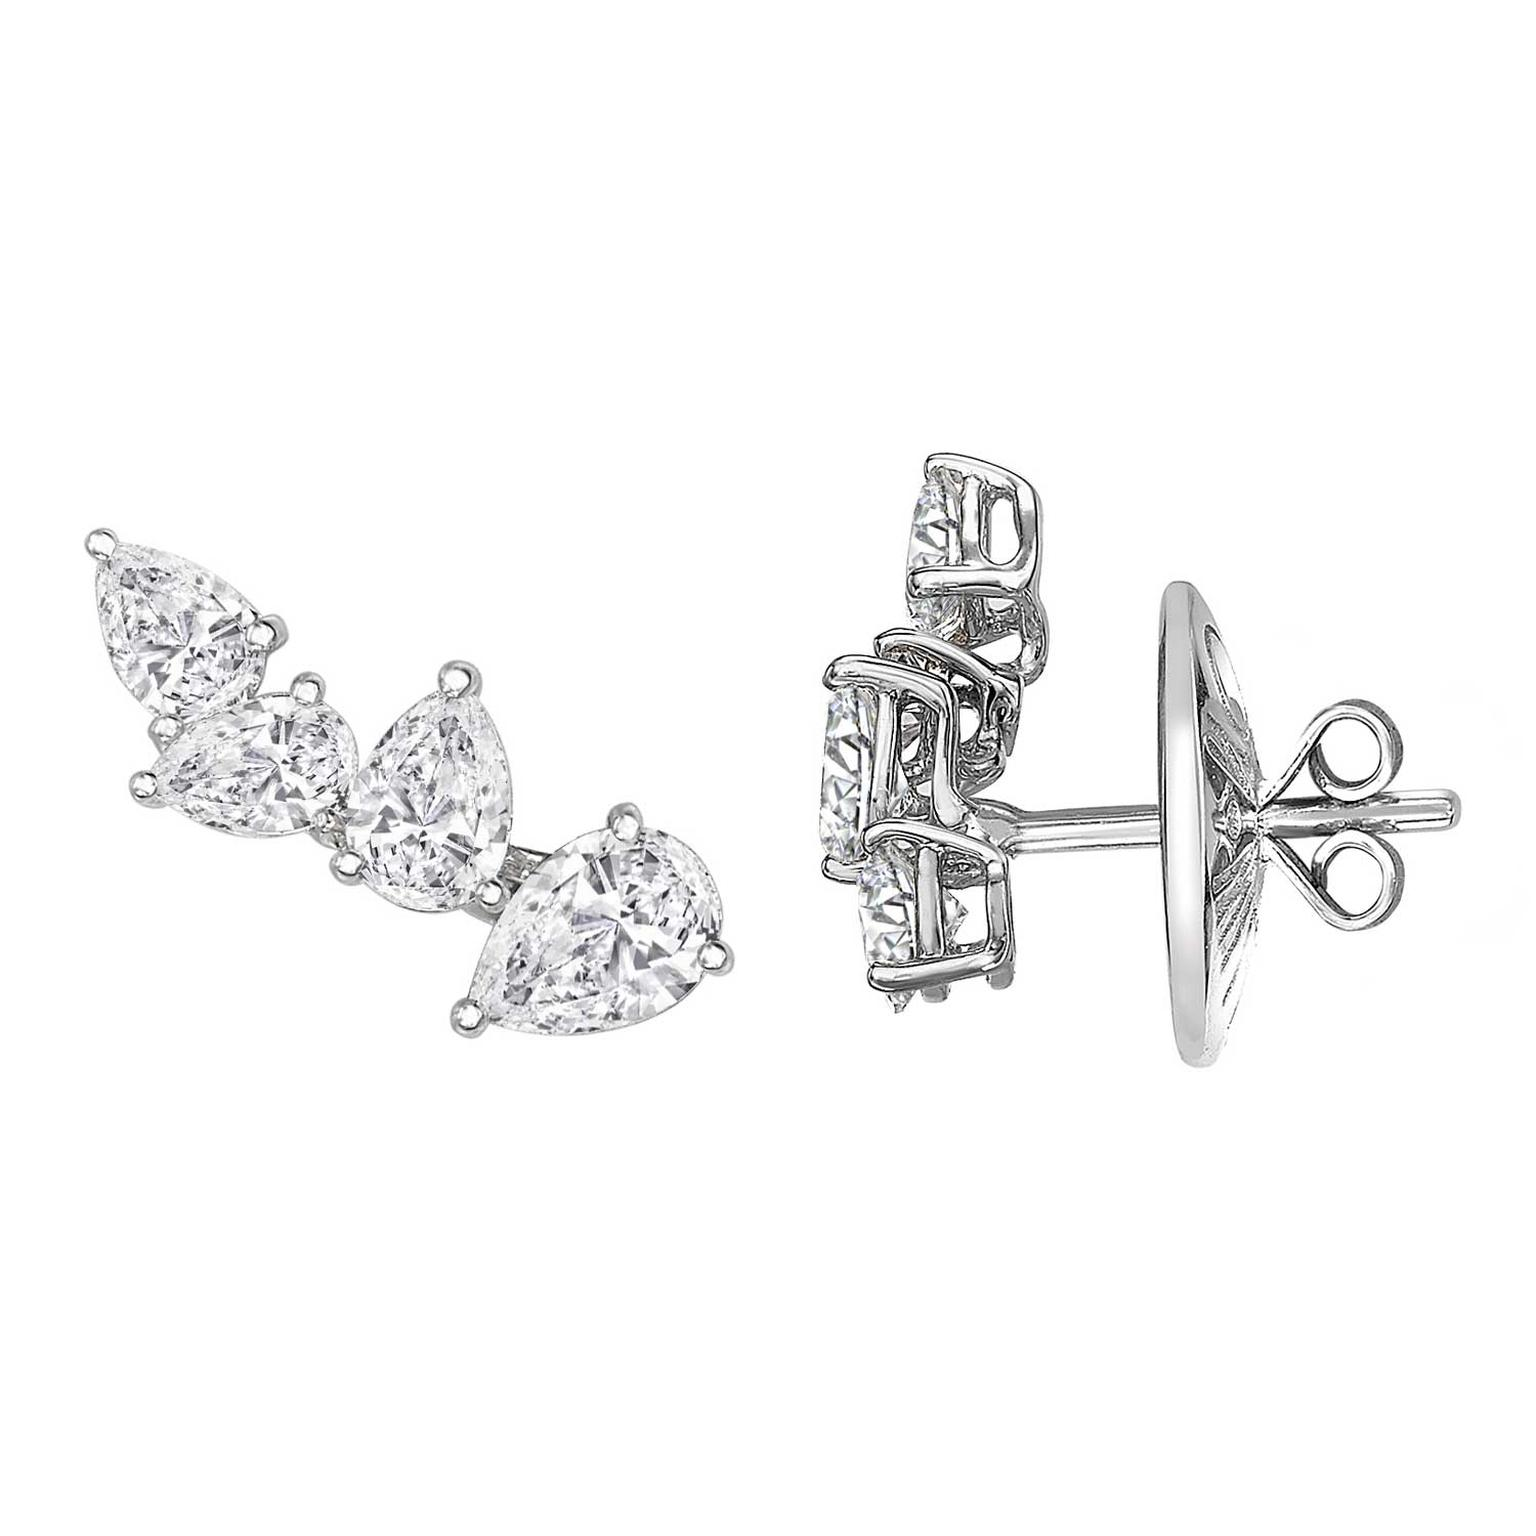 William & Son MYA diamond earrings